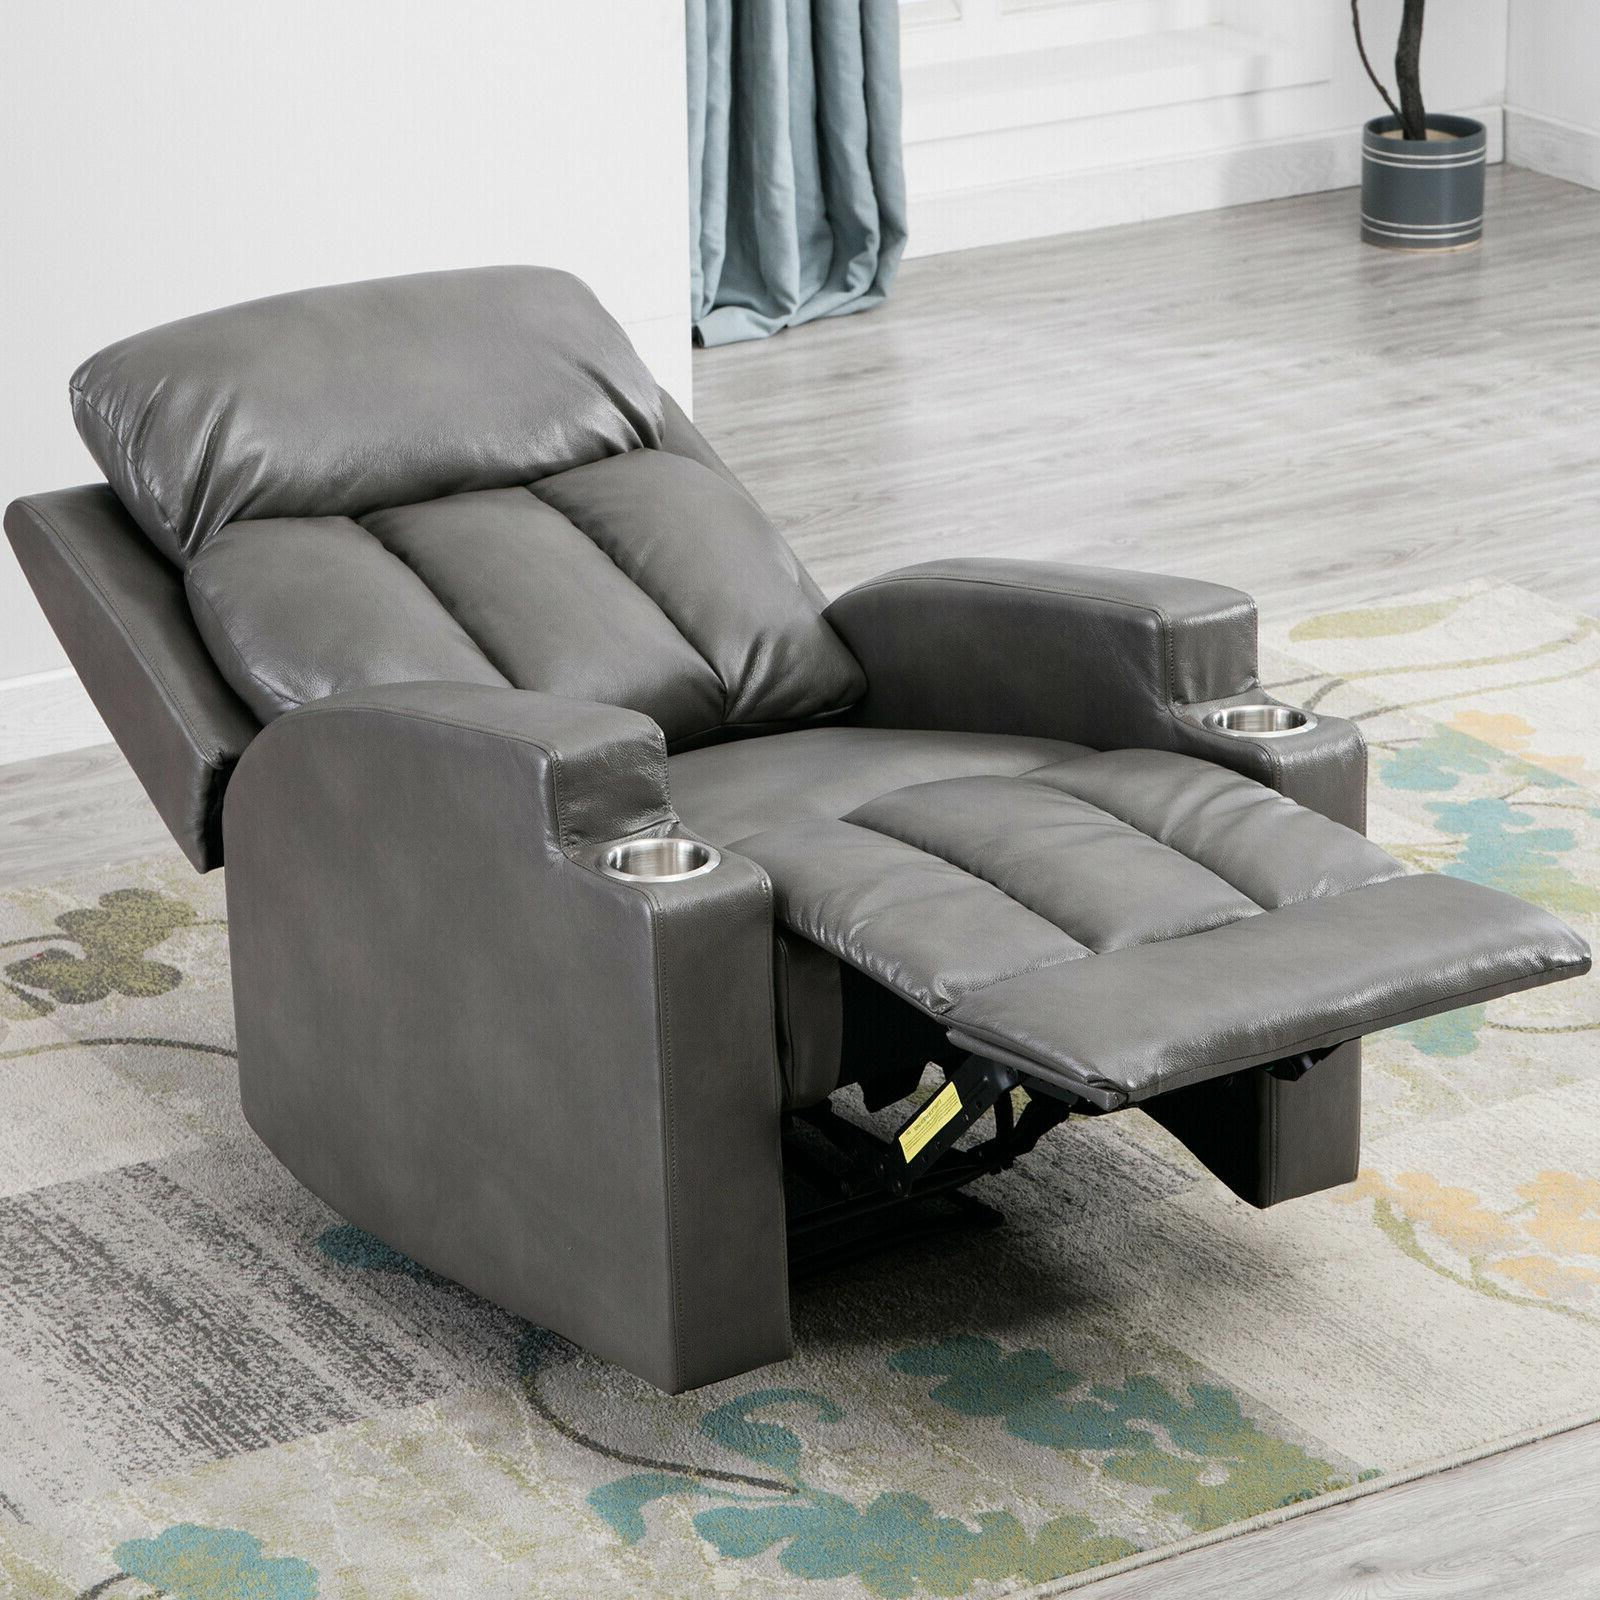 Leather Backrest Sofa Cup Seating